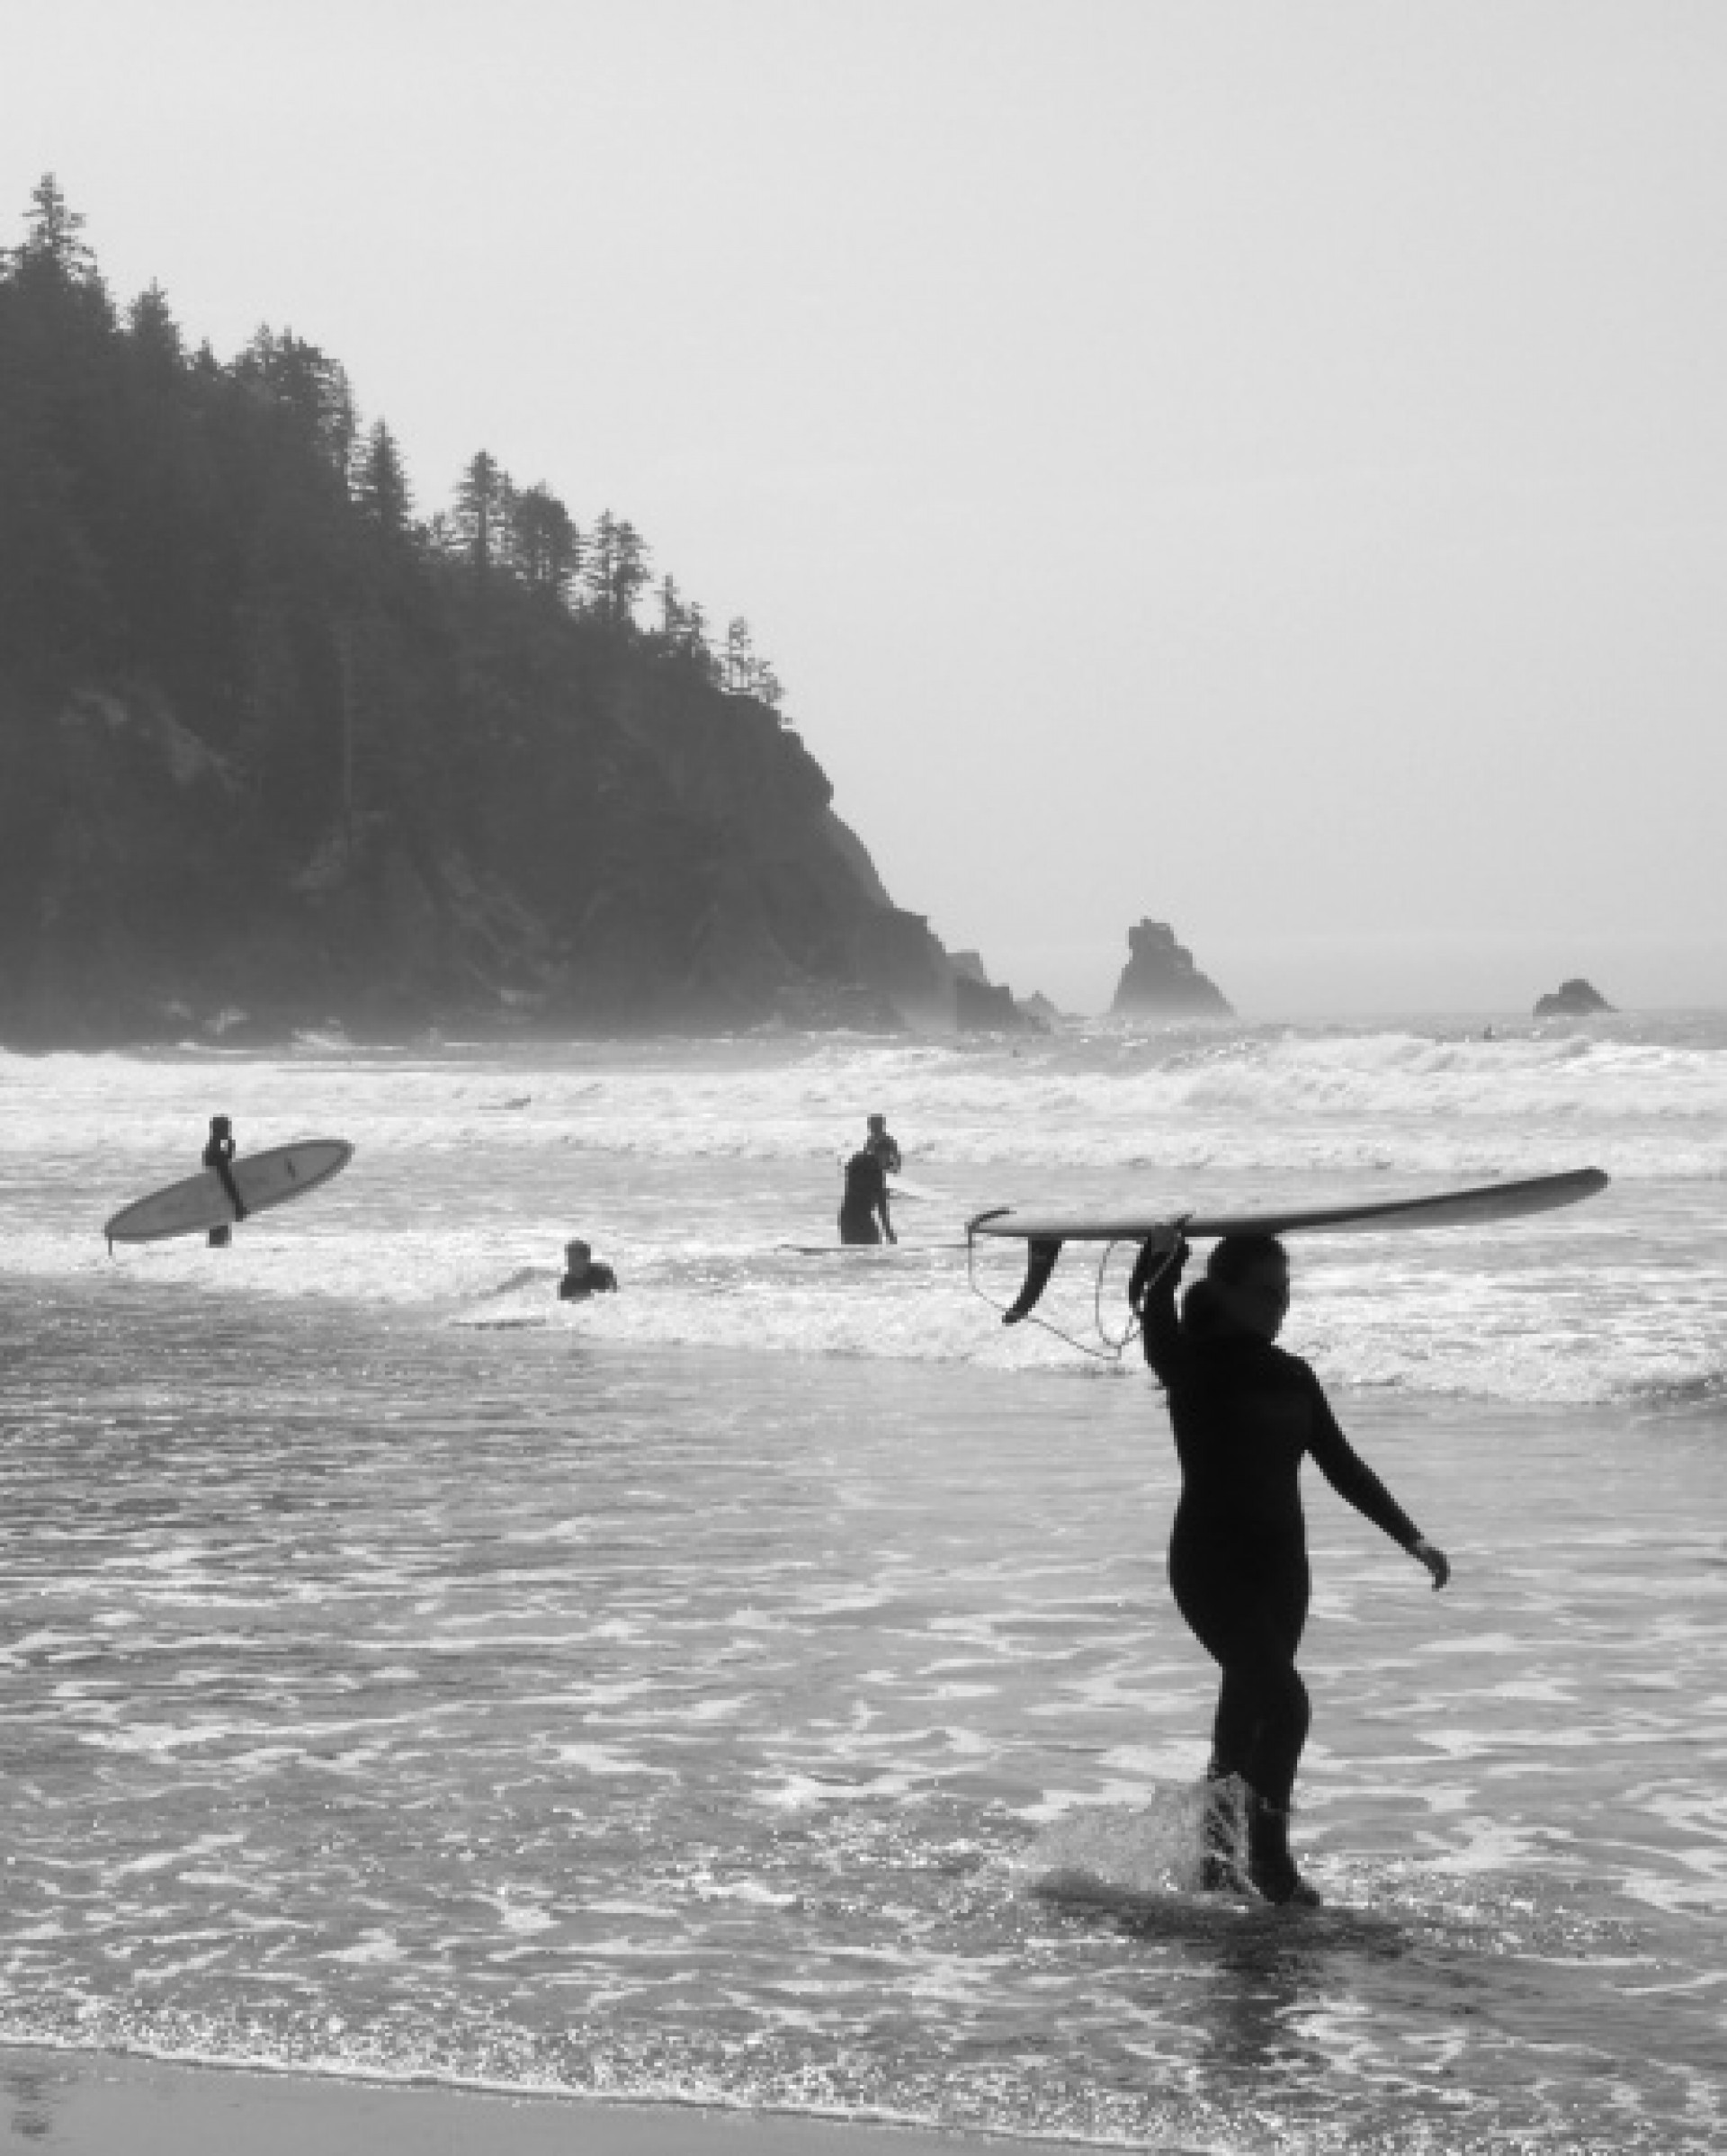 Tim K's photo of Smugglers Cove